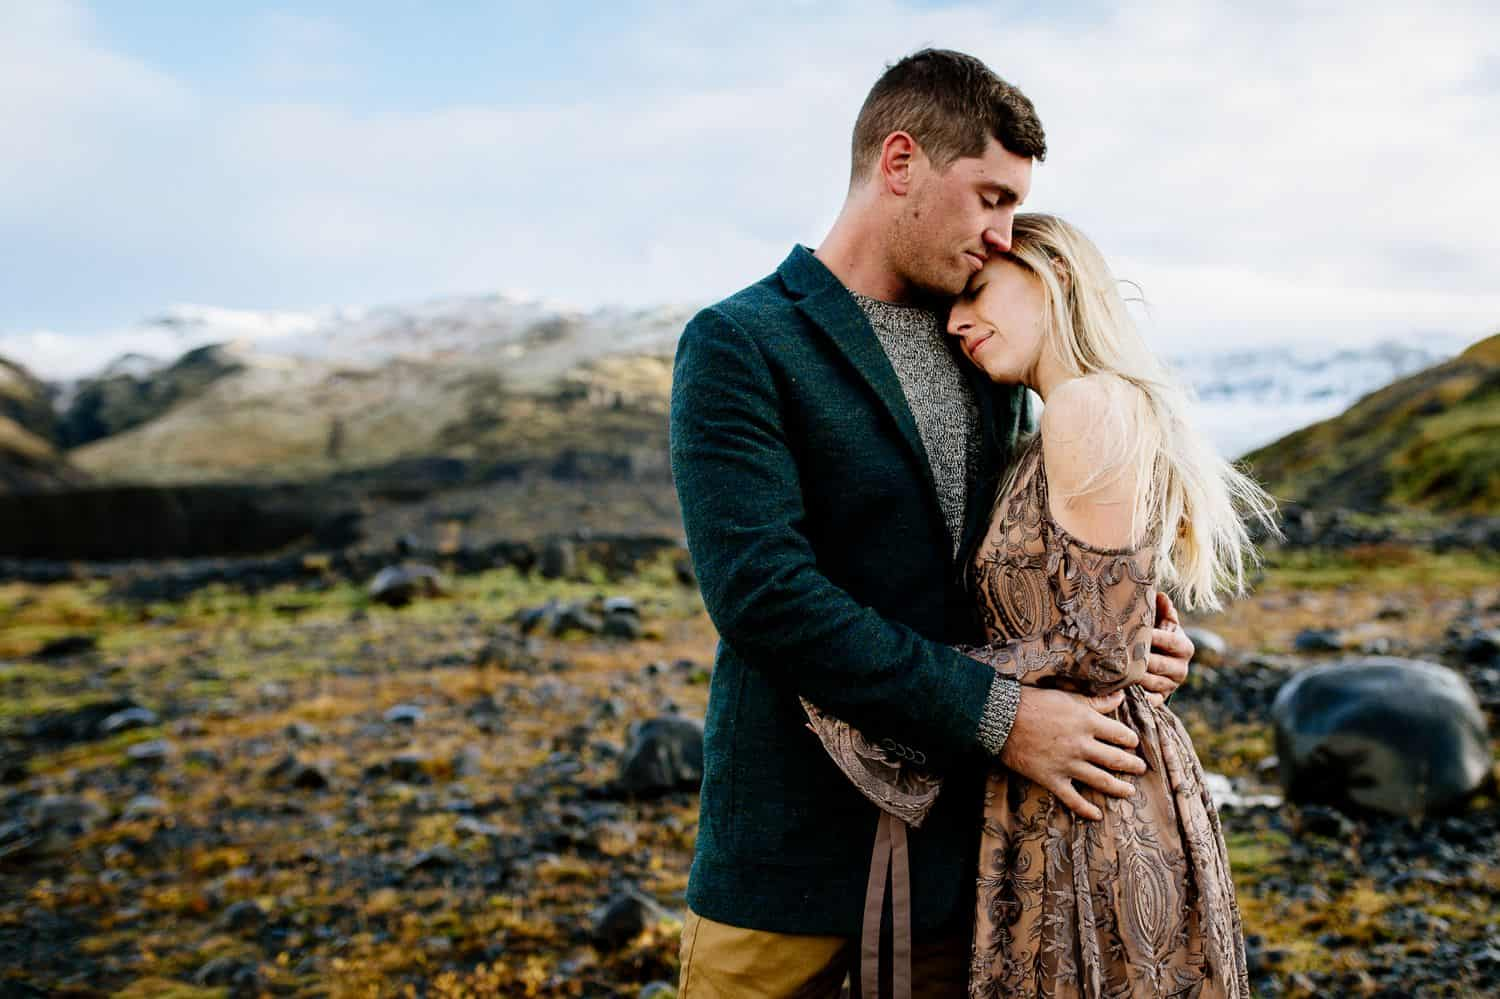 Man in a green jacket embraced a woman in a brown lace dress as they stand in the Icelandic landscape.